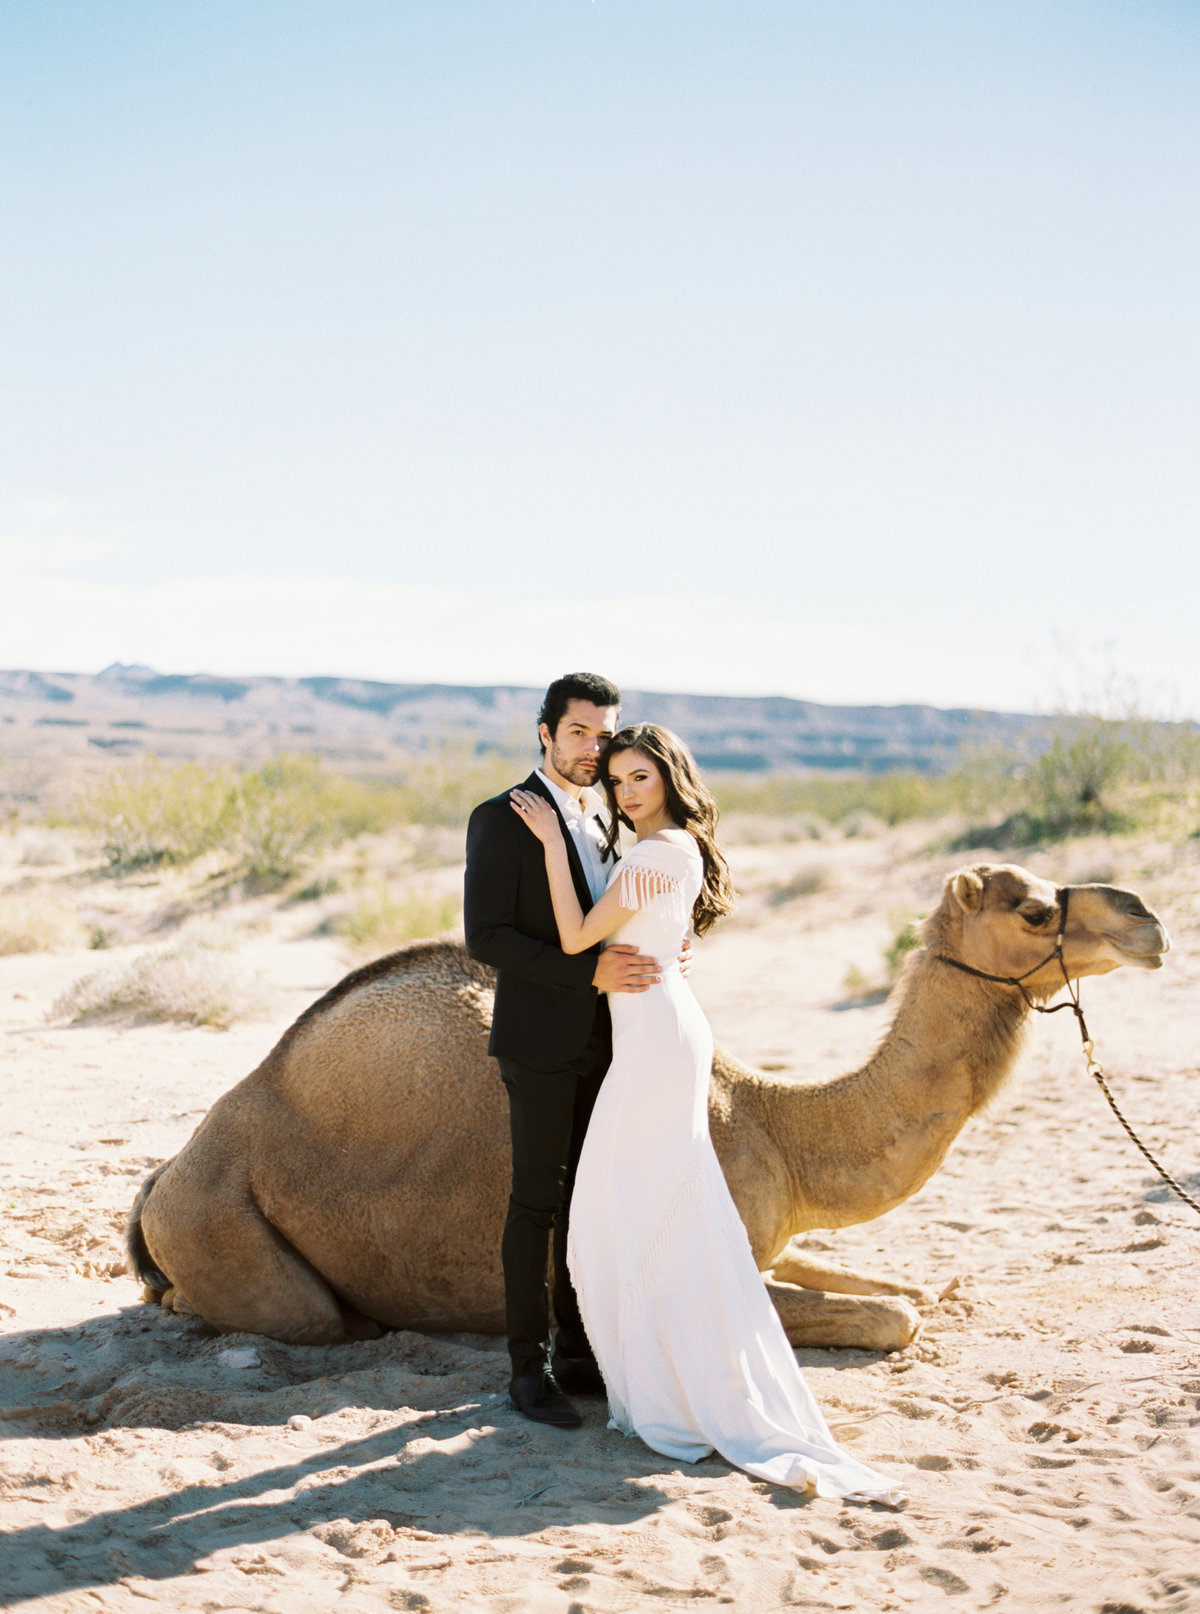 philip-casey-photography-desert-camel-editorial-session-11